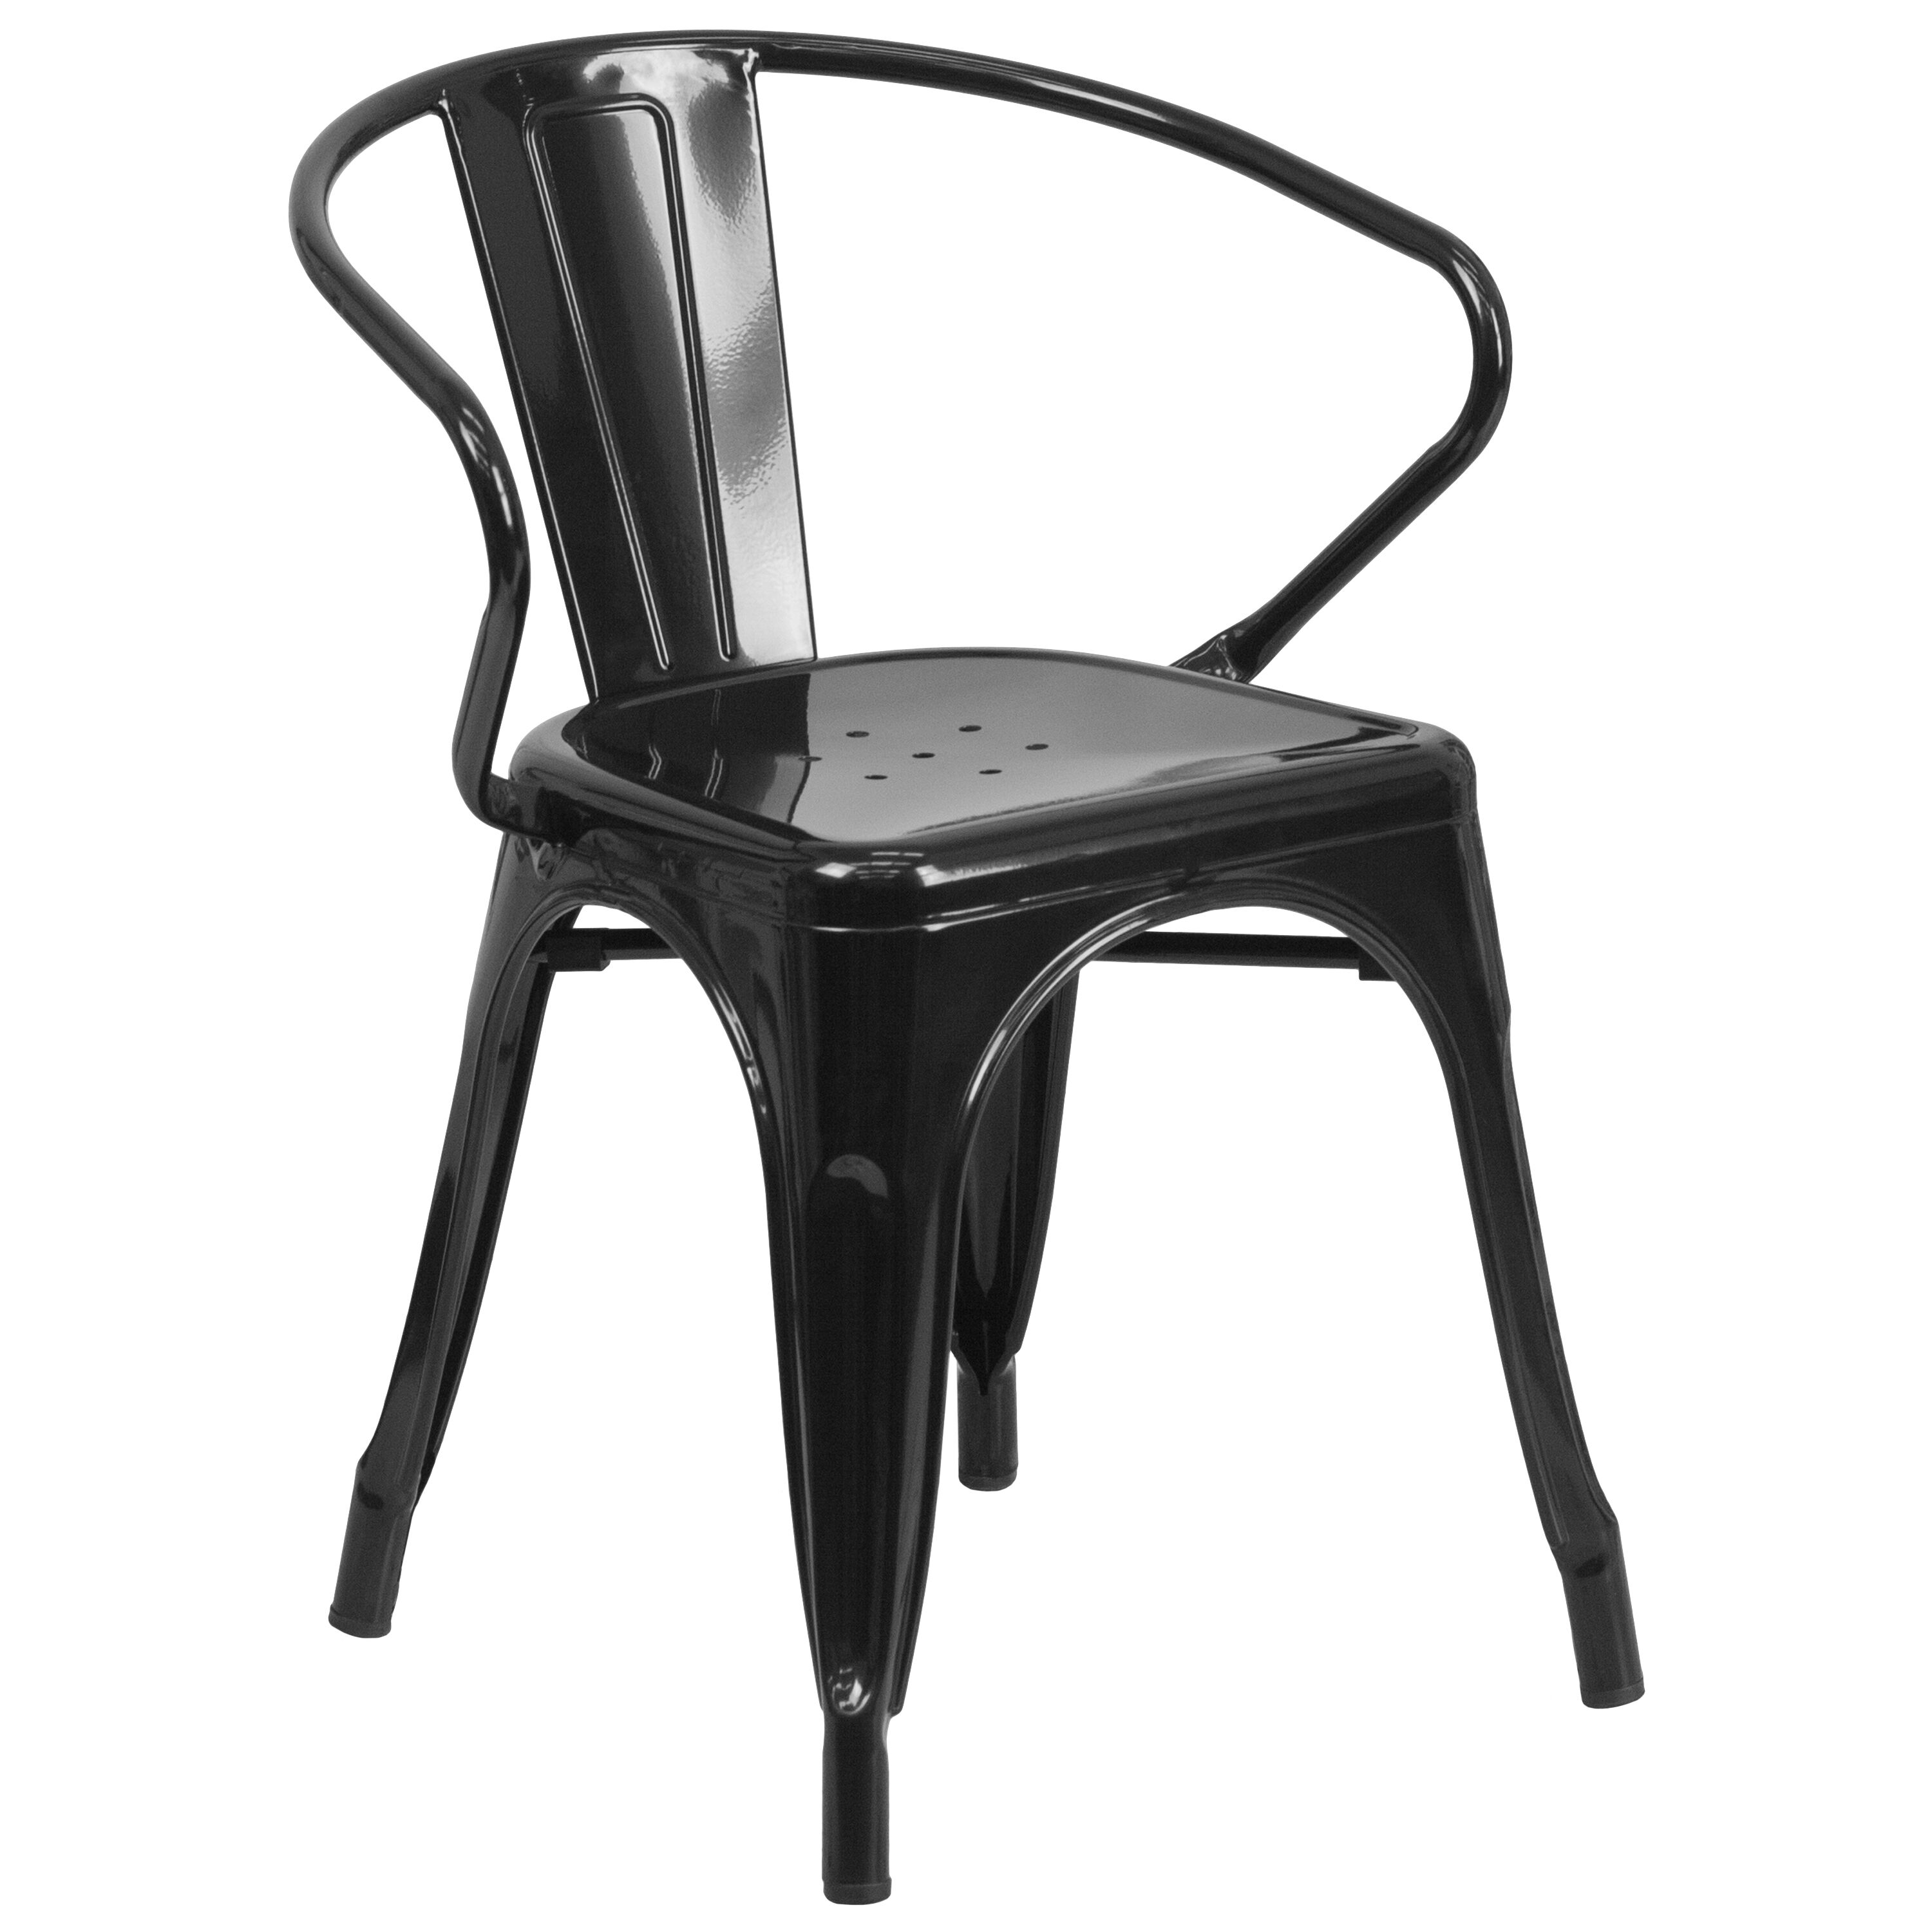 black metal outdoor chairs the chair outlet keizer oregon with arms ch 31270 bk gg